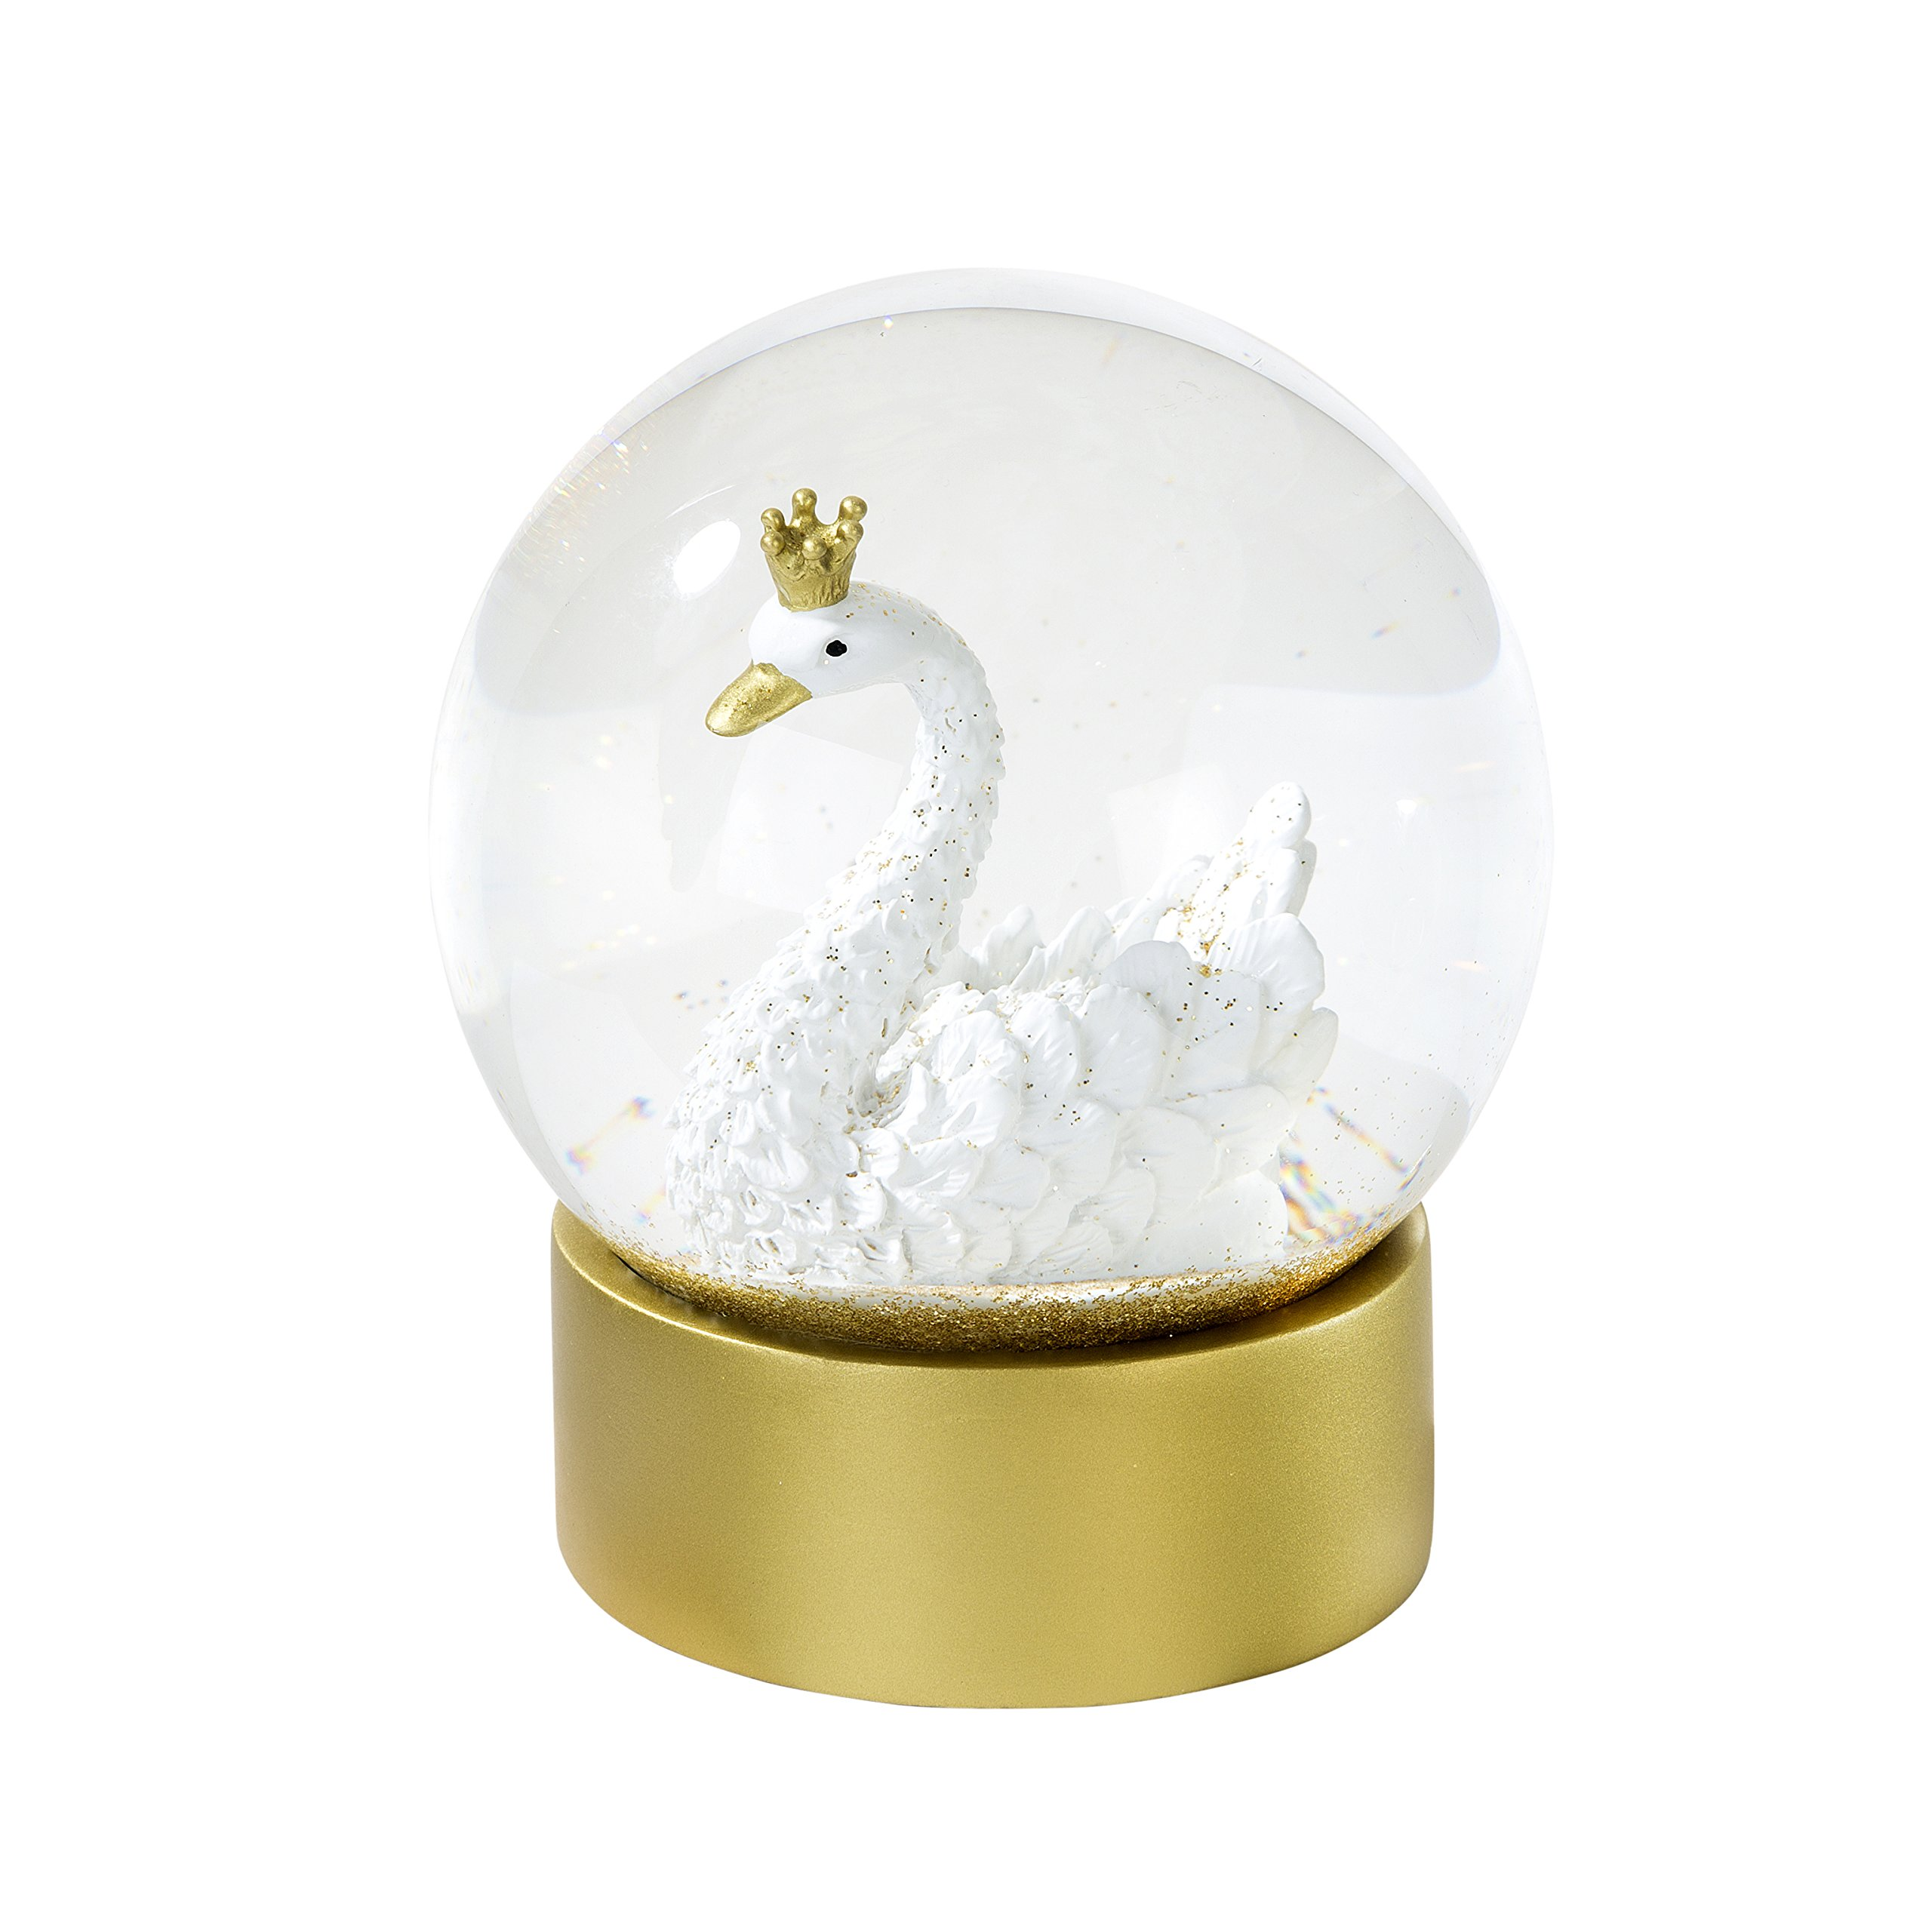 Talking Tables We Heart Swan, Snow Globe with Gold Glitter, H12 x D10cm